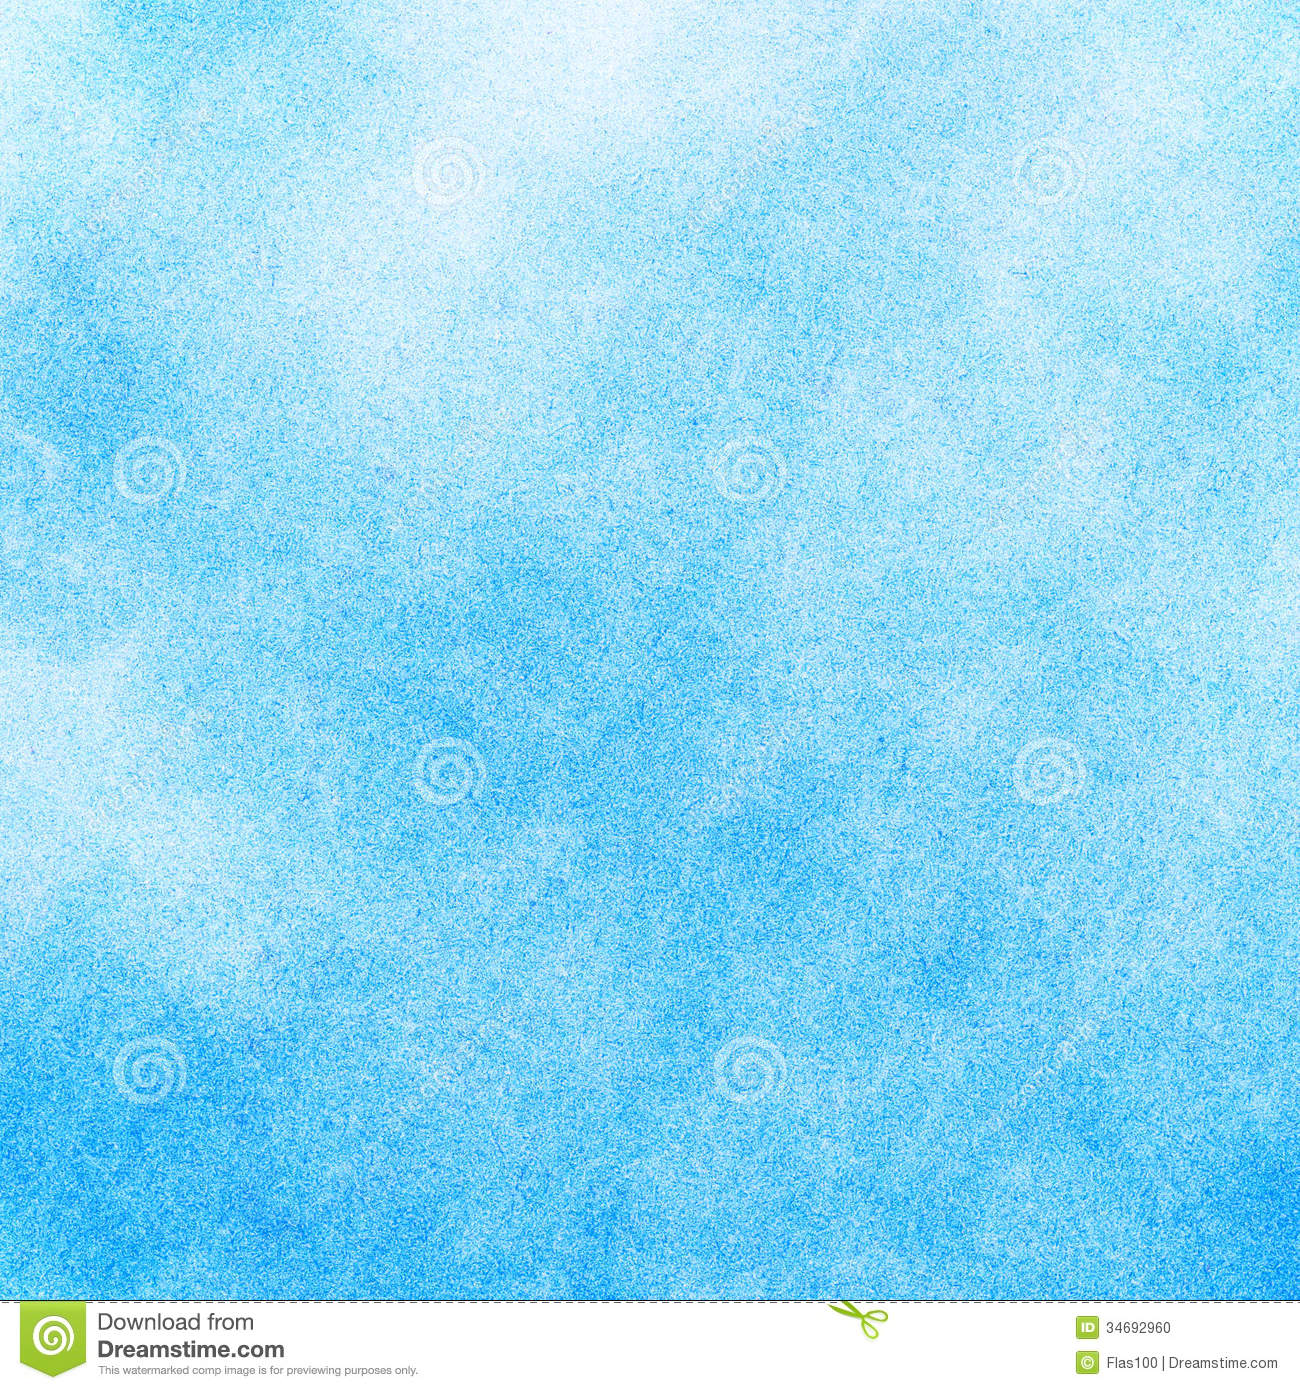 Watercolor splatter vector abstract watercolor background - Abstract Blue Watercolor Background Stock Photo Image